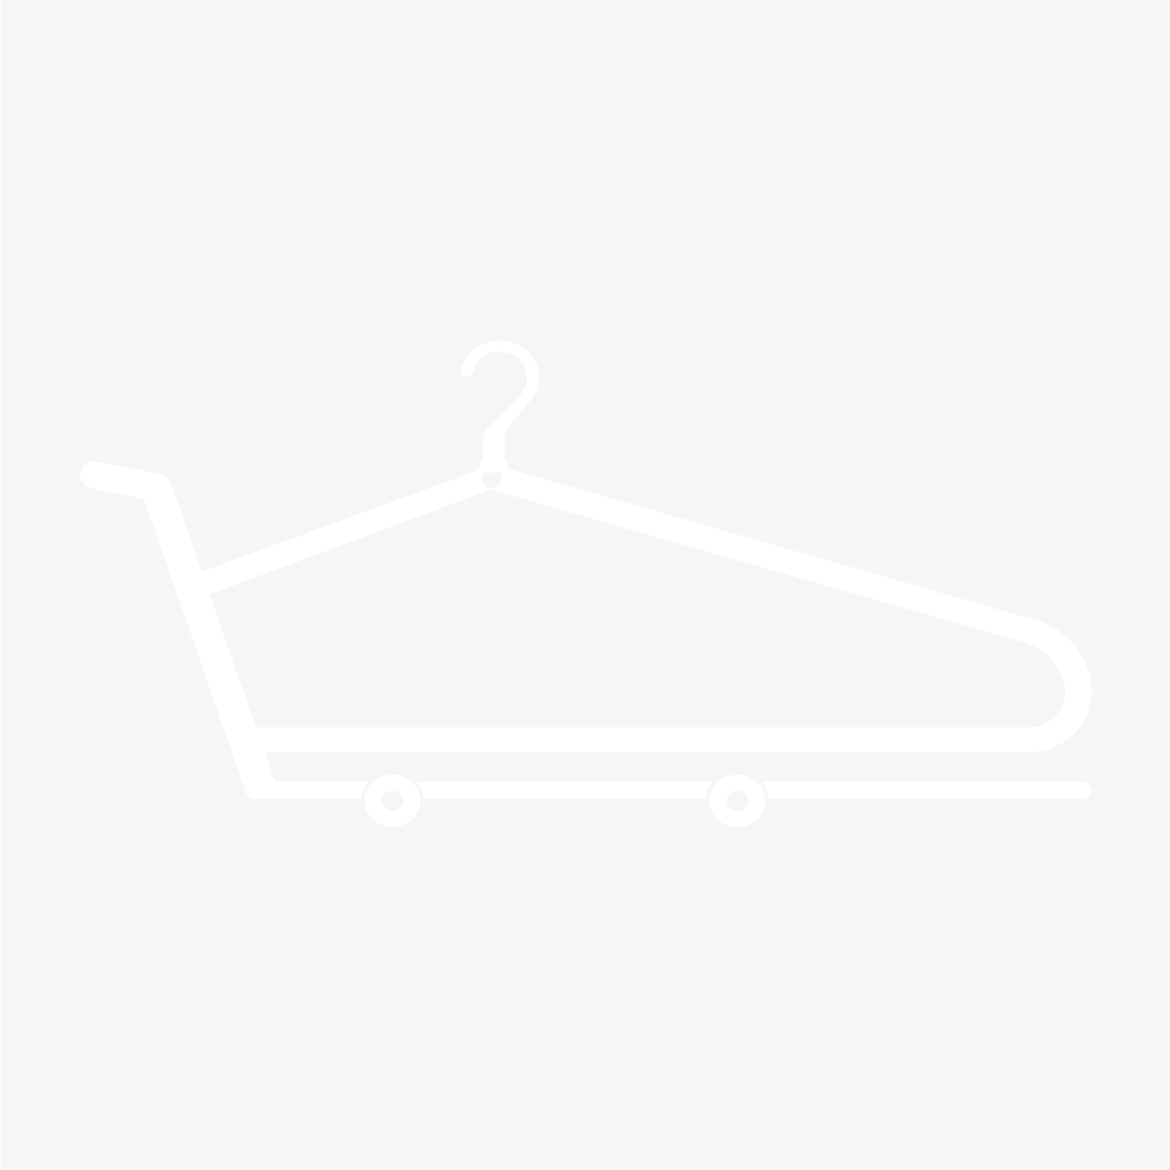 548bdd82 Sell old clothes online for men in India | Buy mens clothes at Kiabza